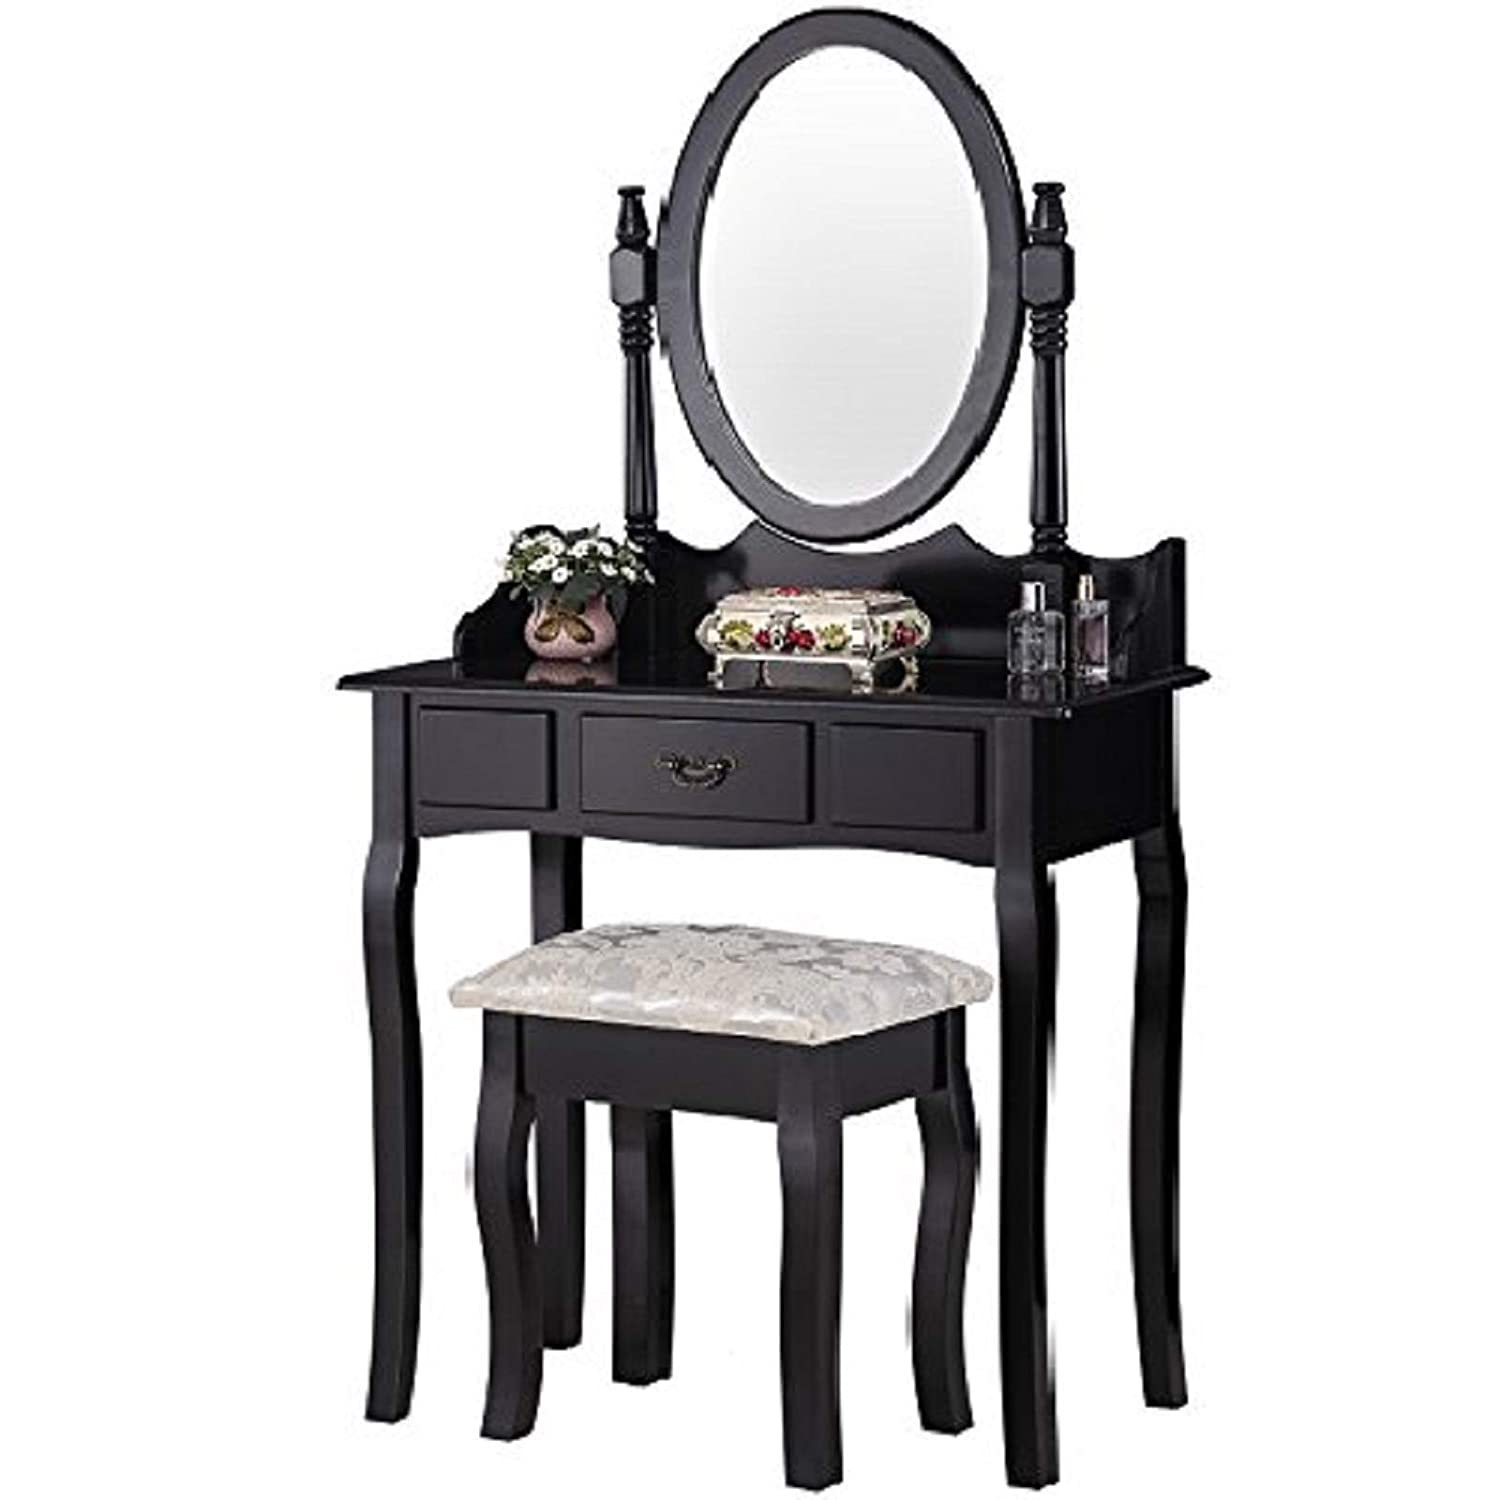 Mecor Vanity Table Set Oval Mirror,Wood Makeup Table w Drawer Storage,Bedroom Dressing Table with Cushioned Stool for Girls Women Black